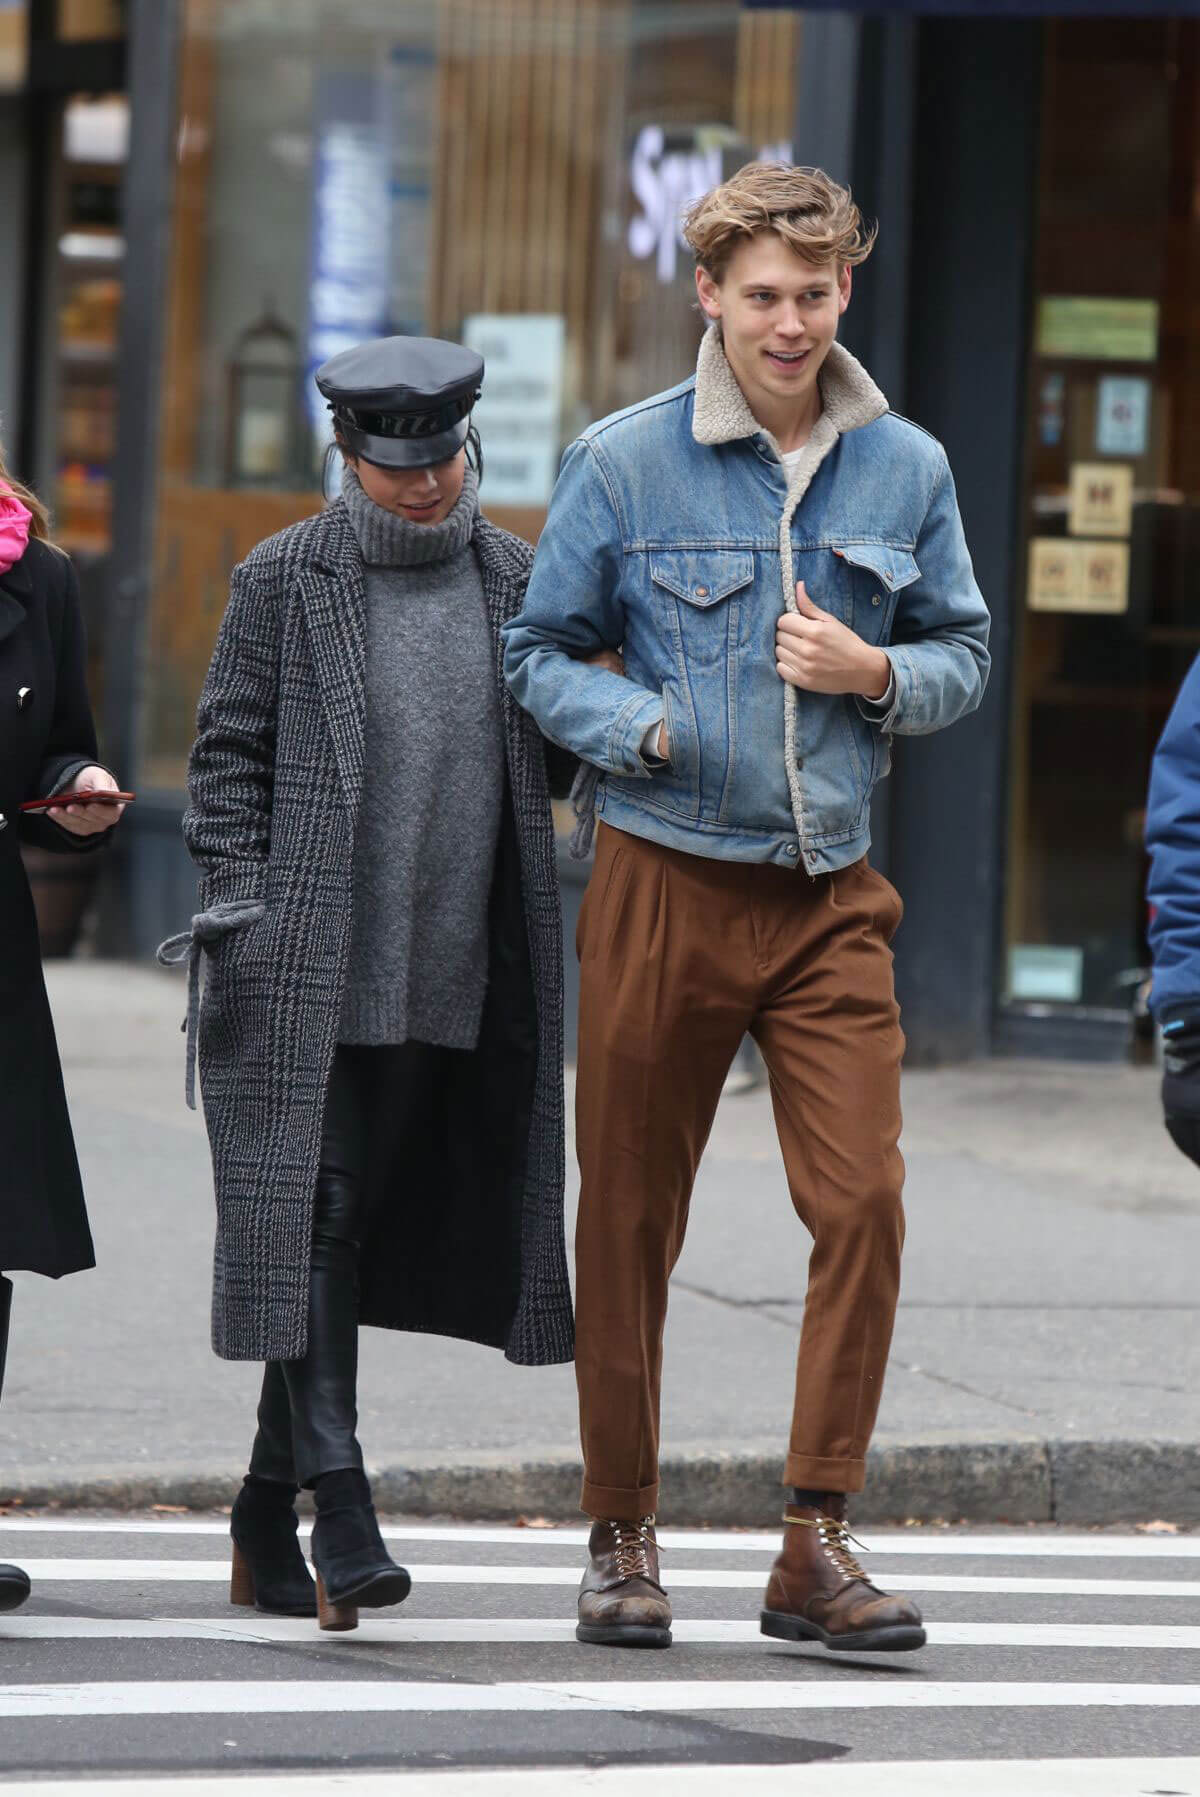 Vanessa Hudgens and Austin Butler Stills Out in New York